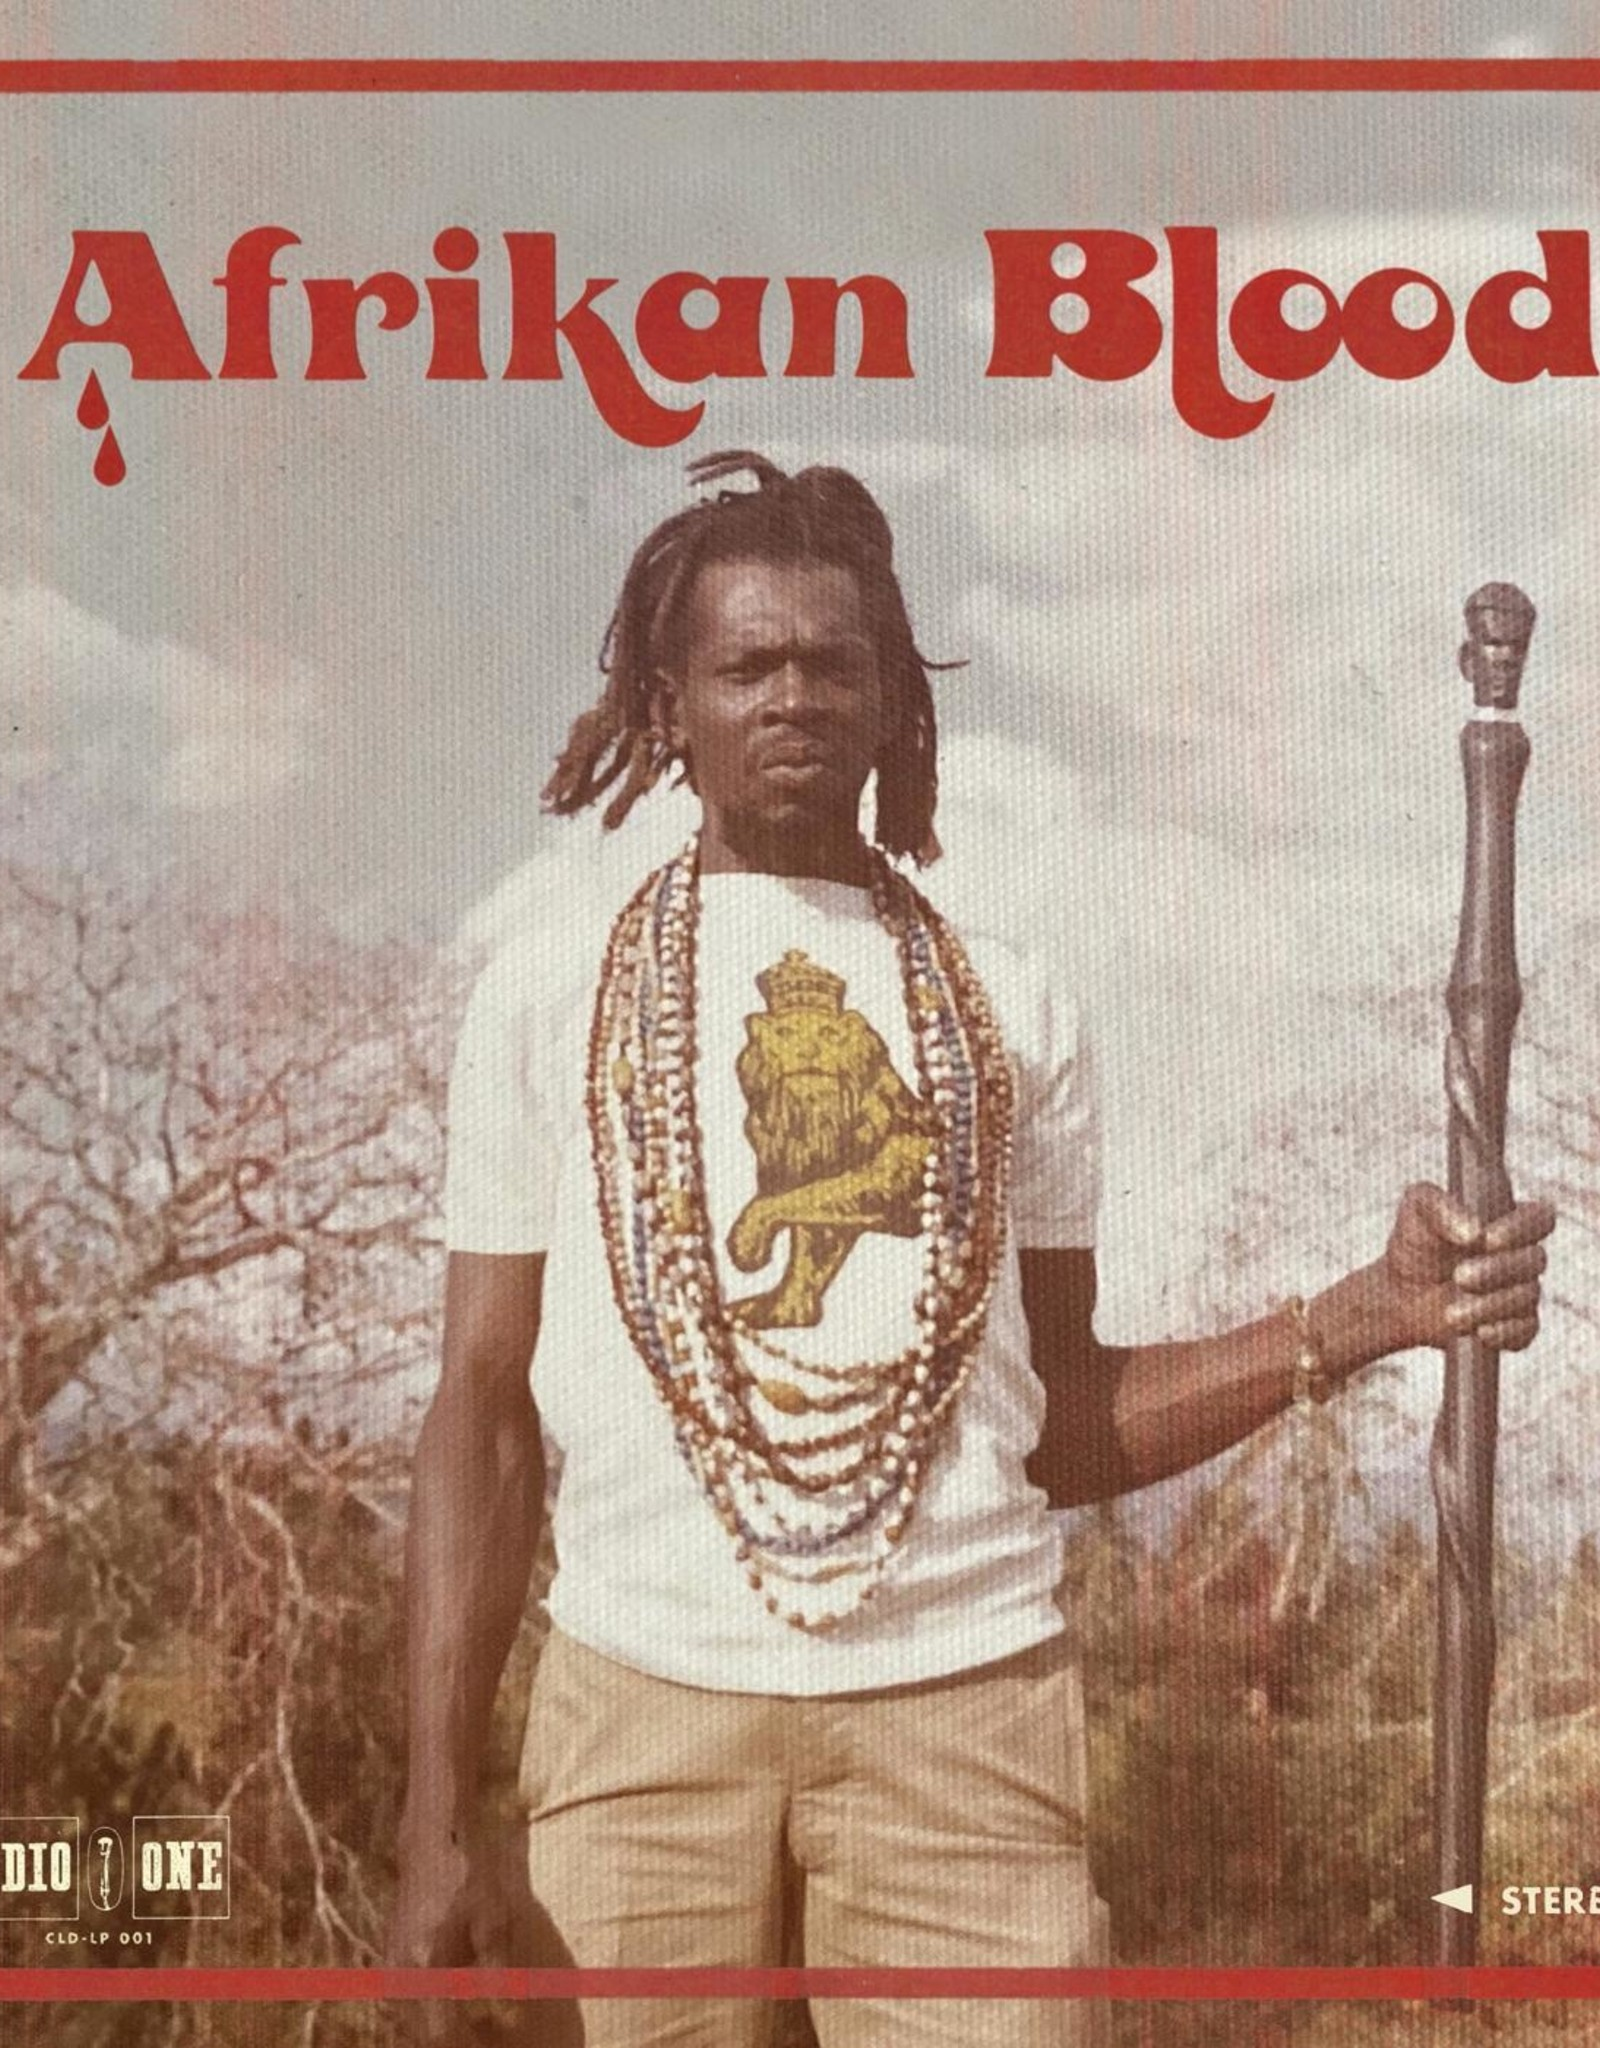 Studio One - Afrikan Blood(RSD 2020 BF)